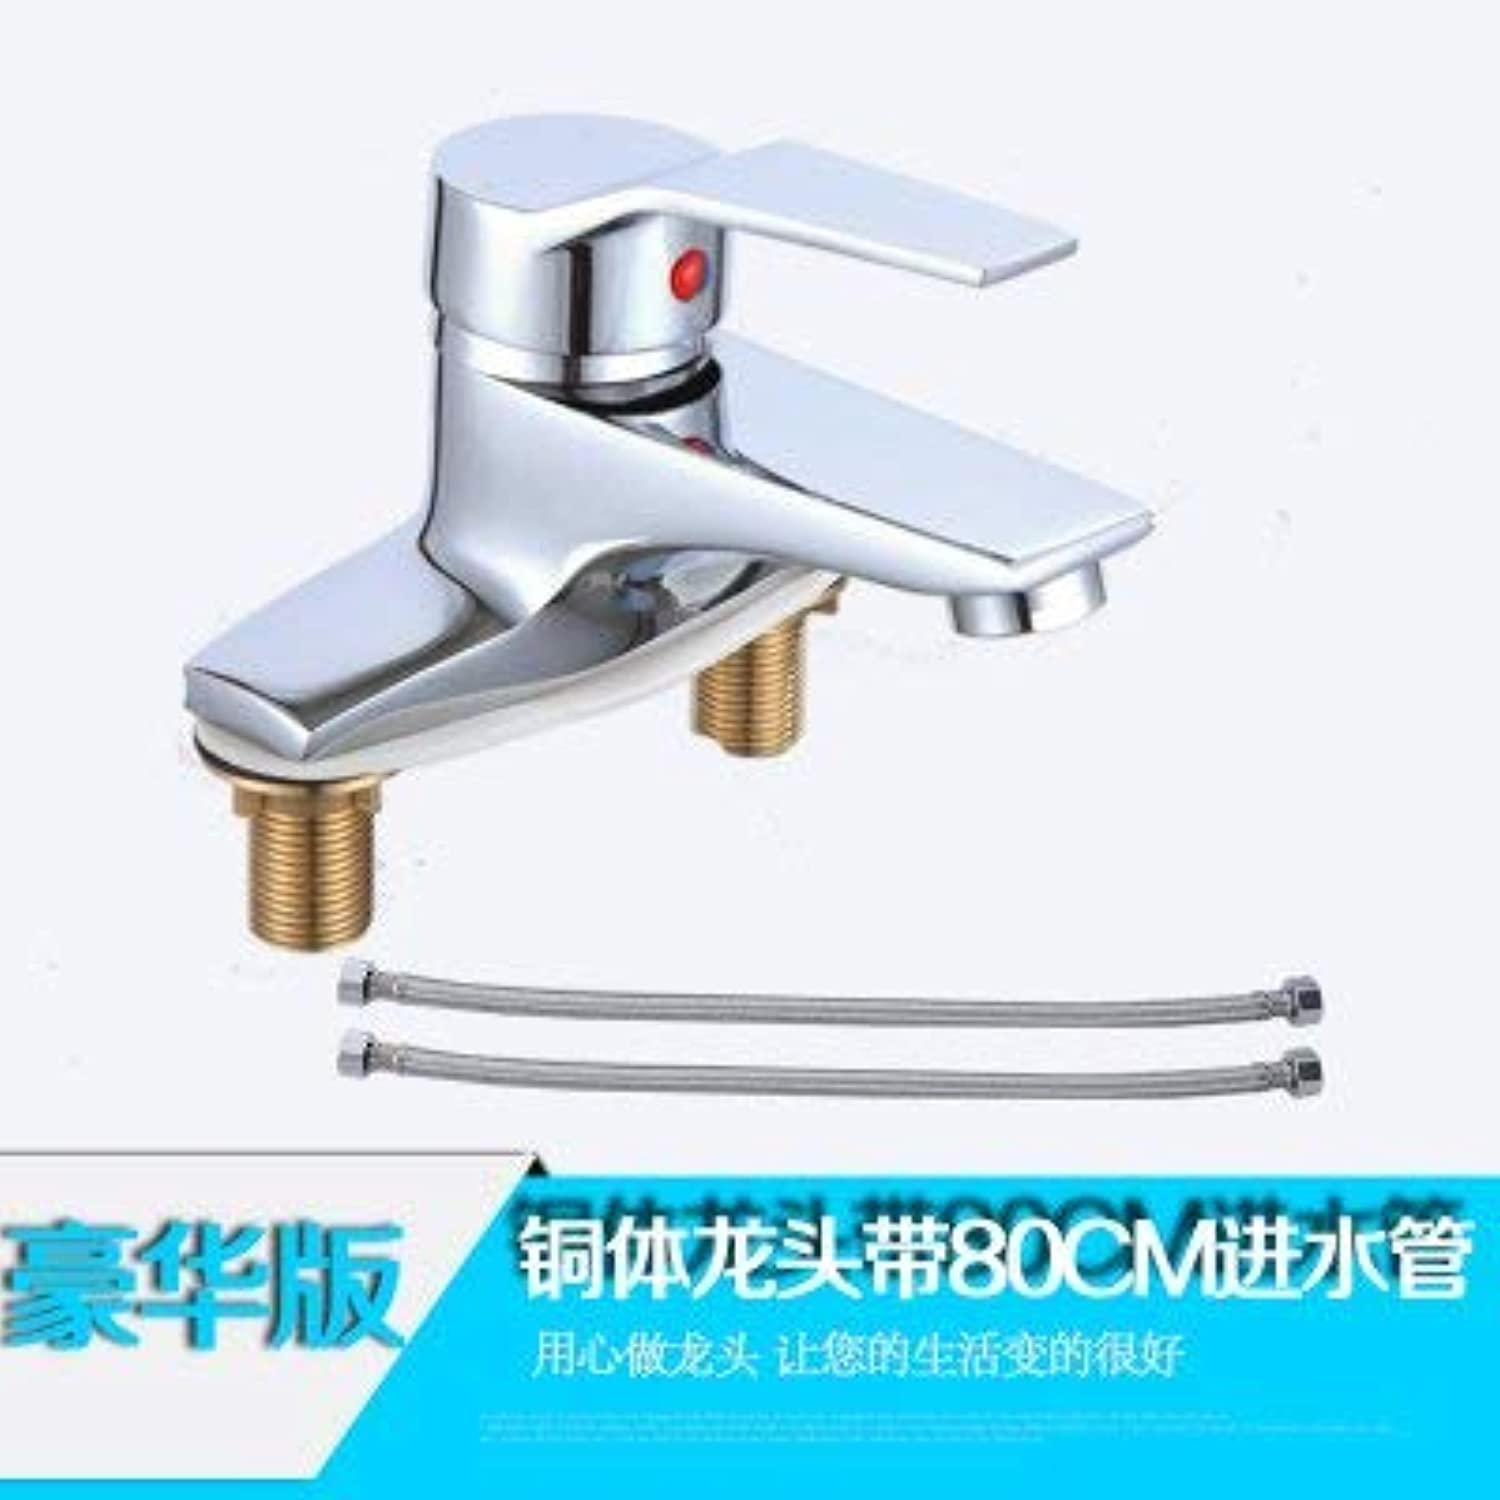 Oudan Basin Mixer Tap Ya e 2-hole basin Washbasin Faucet hot and cold basin faucet 3-hole wash basins Bathroom Cabinet faucet, Deluxe Edition brass body with 80 cm water tap.